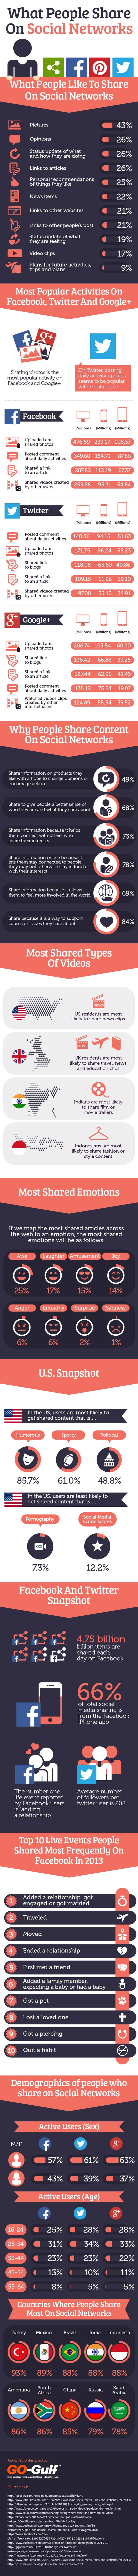 What People Share on Social Networks - Statistics and Trends